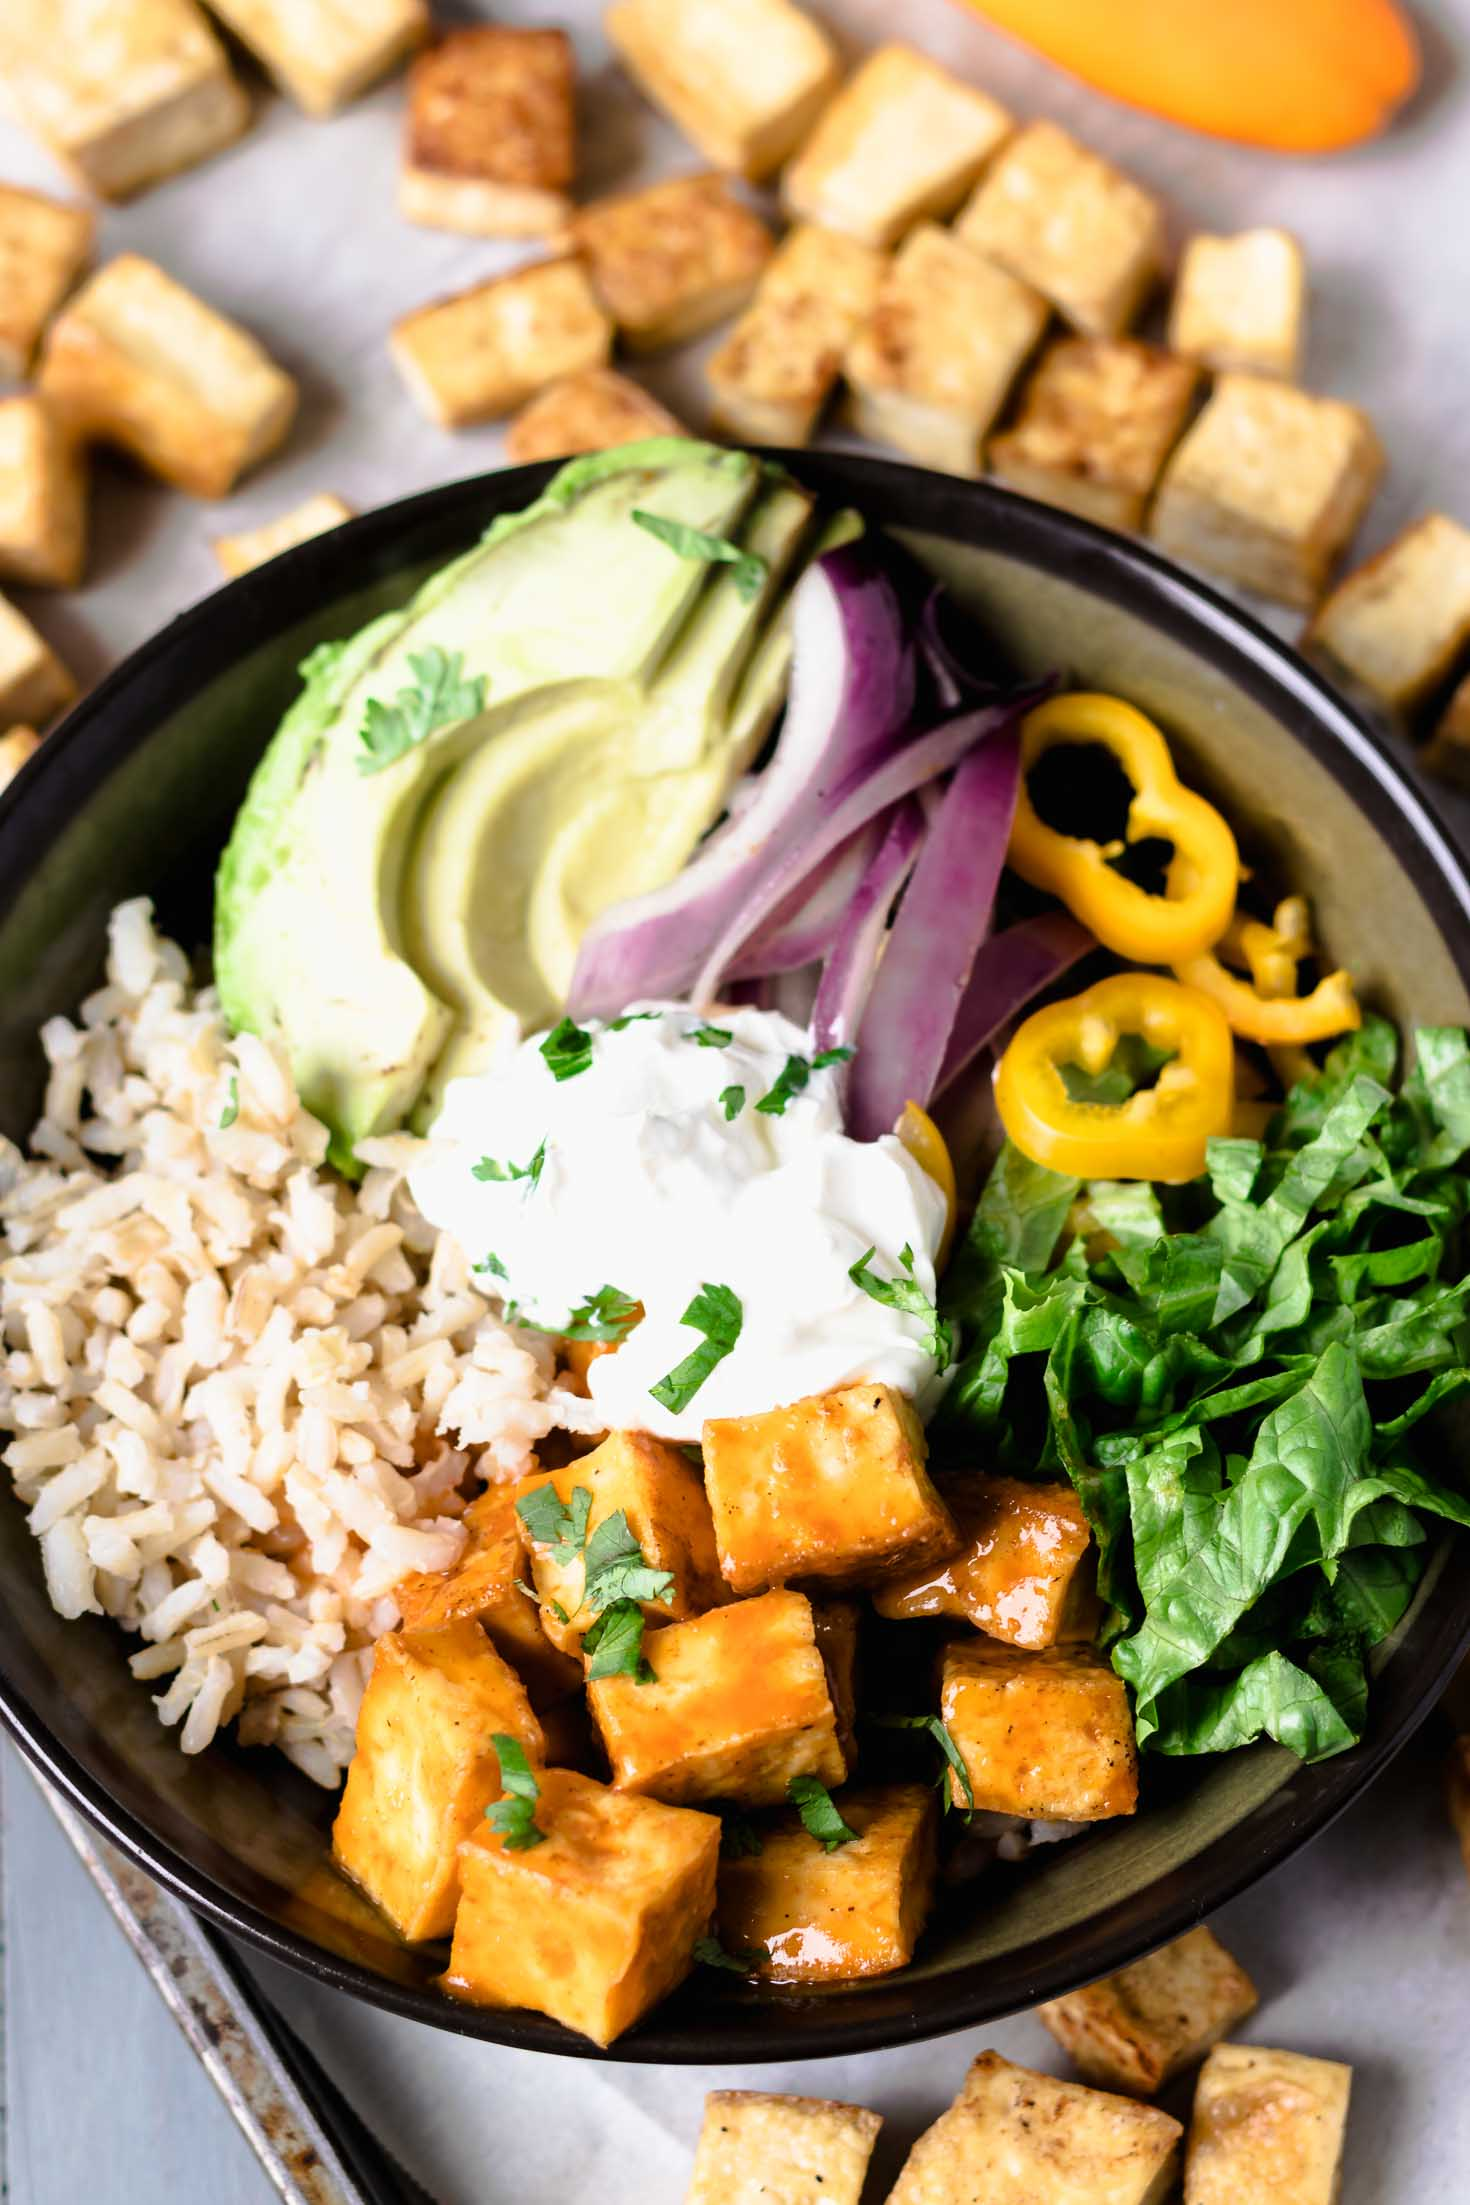 vegan buffalo tofu burrito bowl -top view with roasted tofu on baking sheet